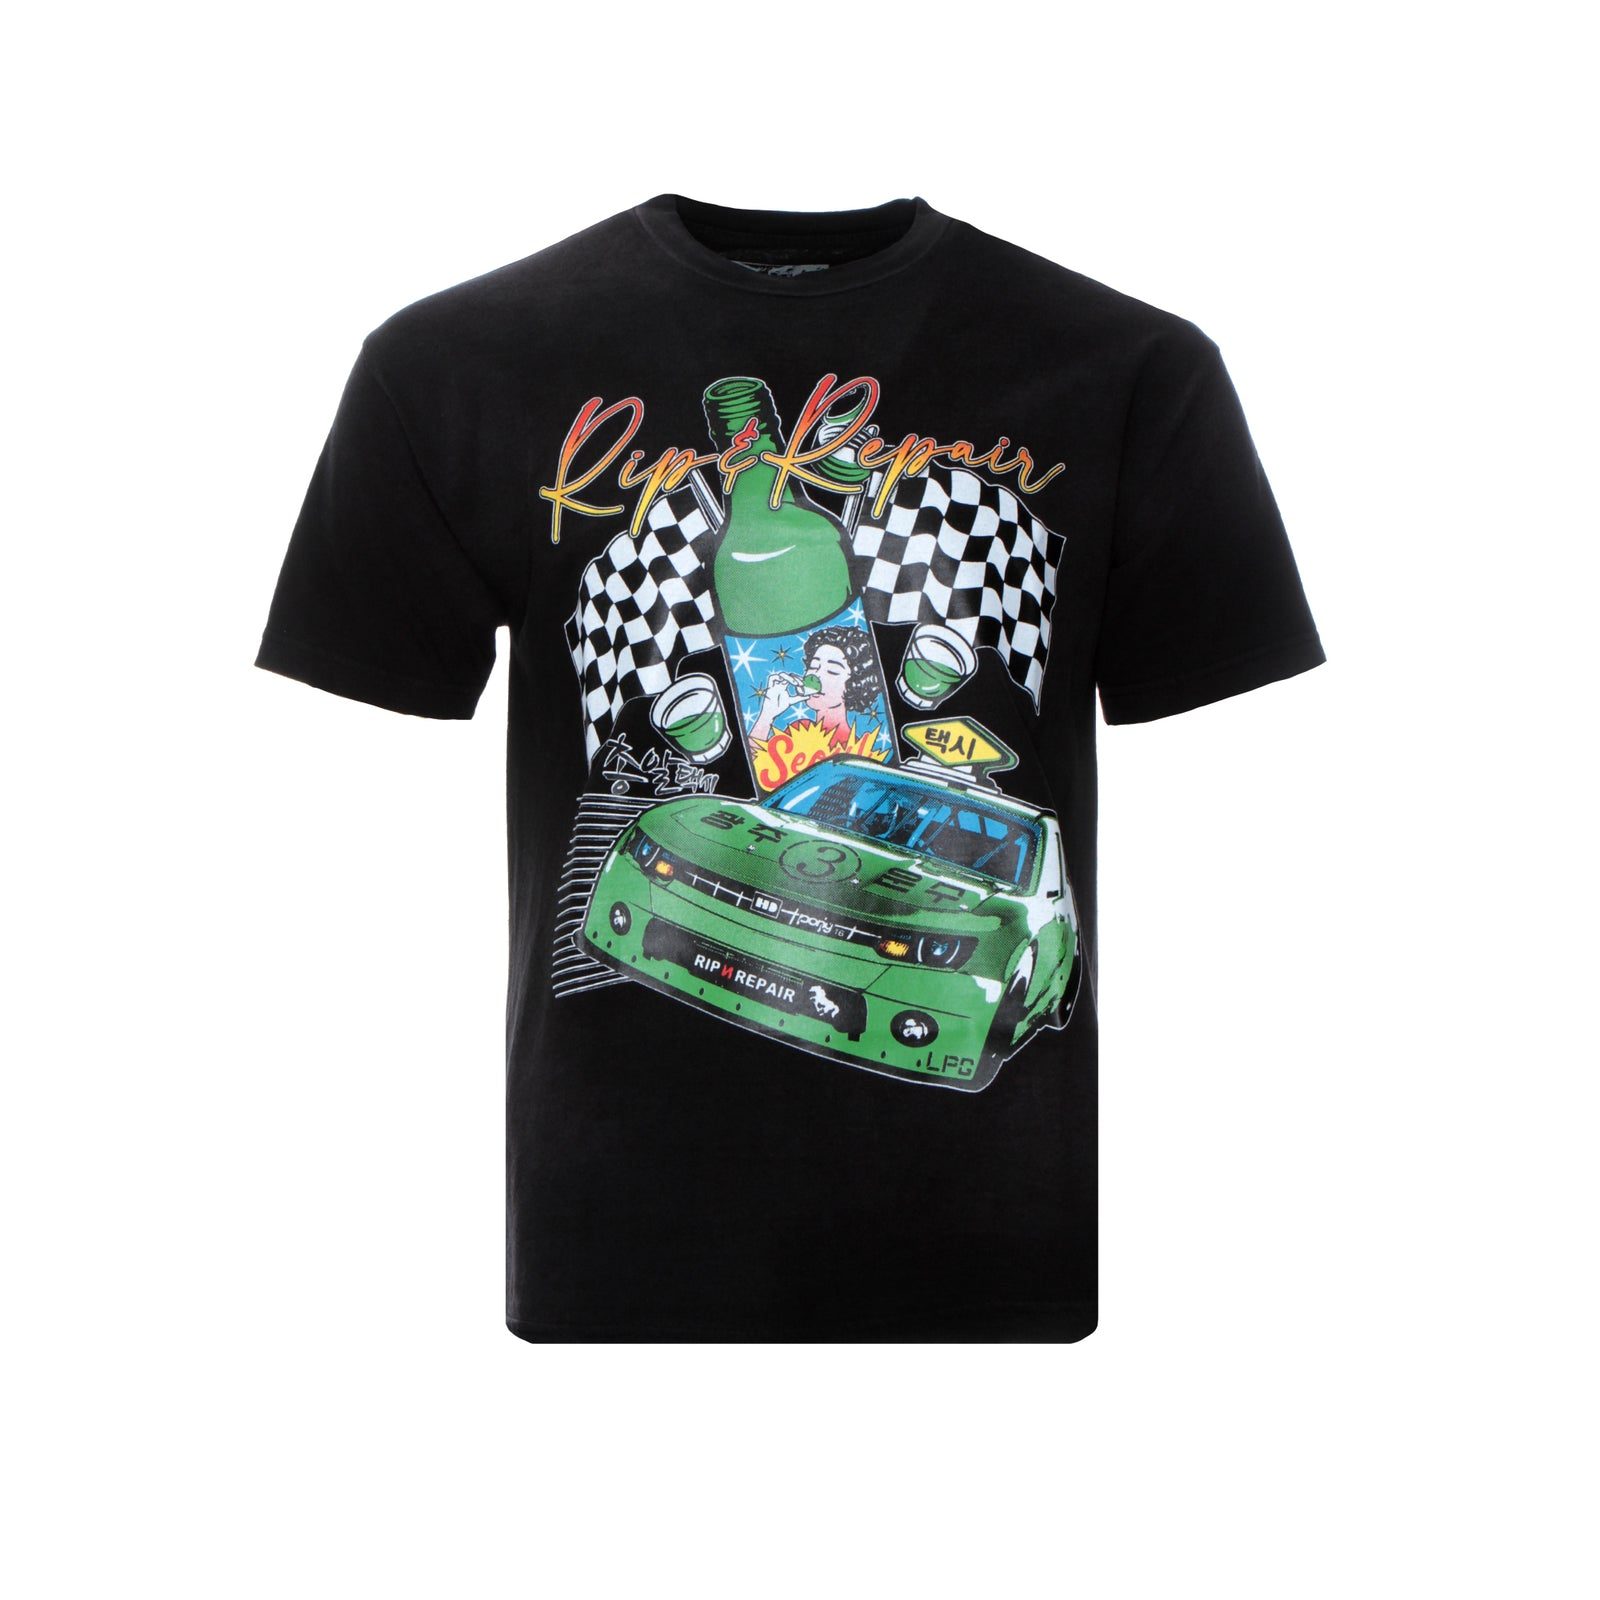 Rip n' Repair Seoul Taxi SS Men's Graphic Tee